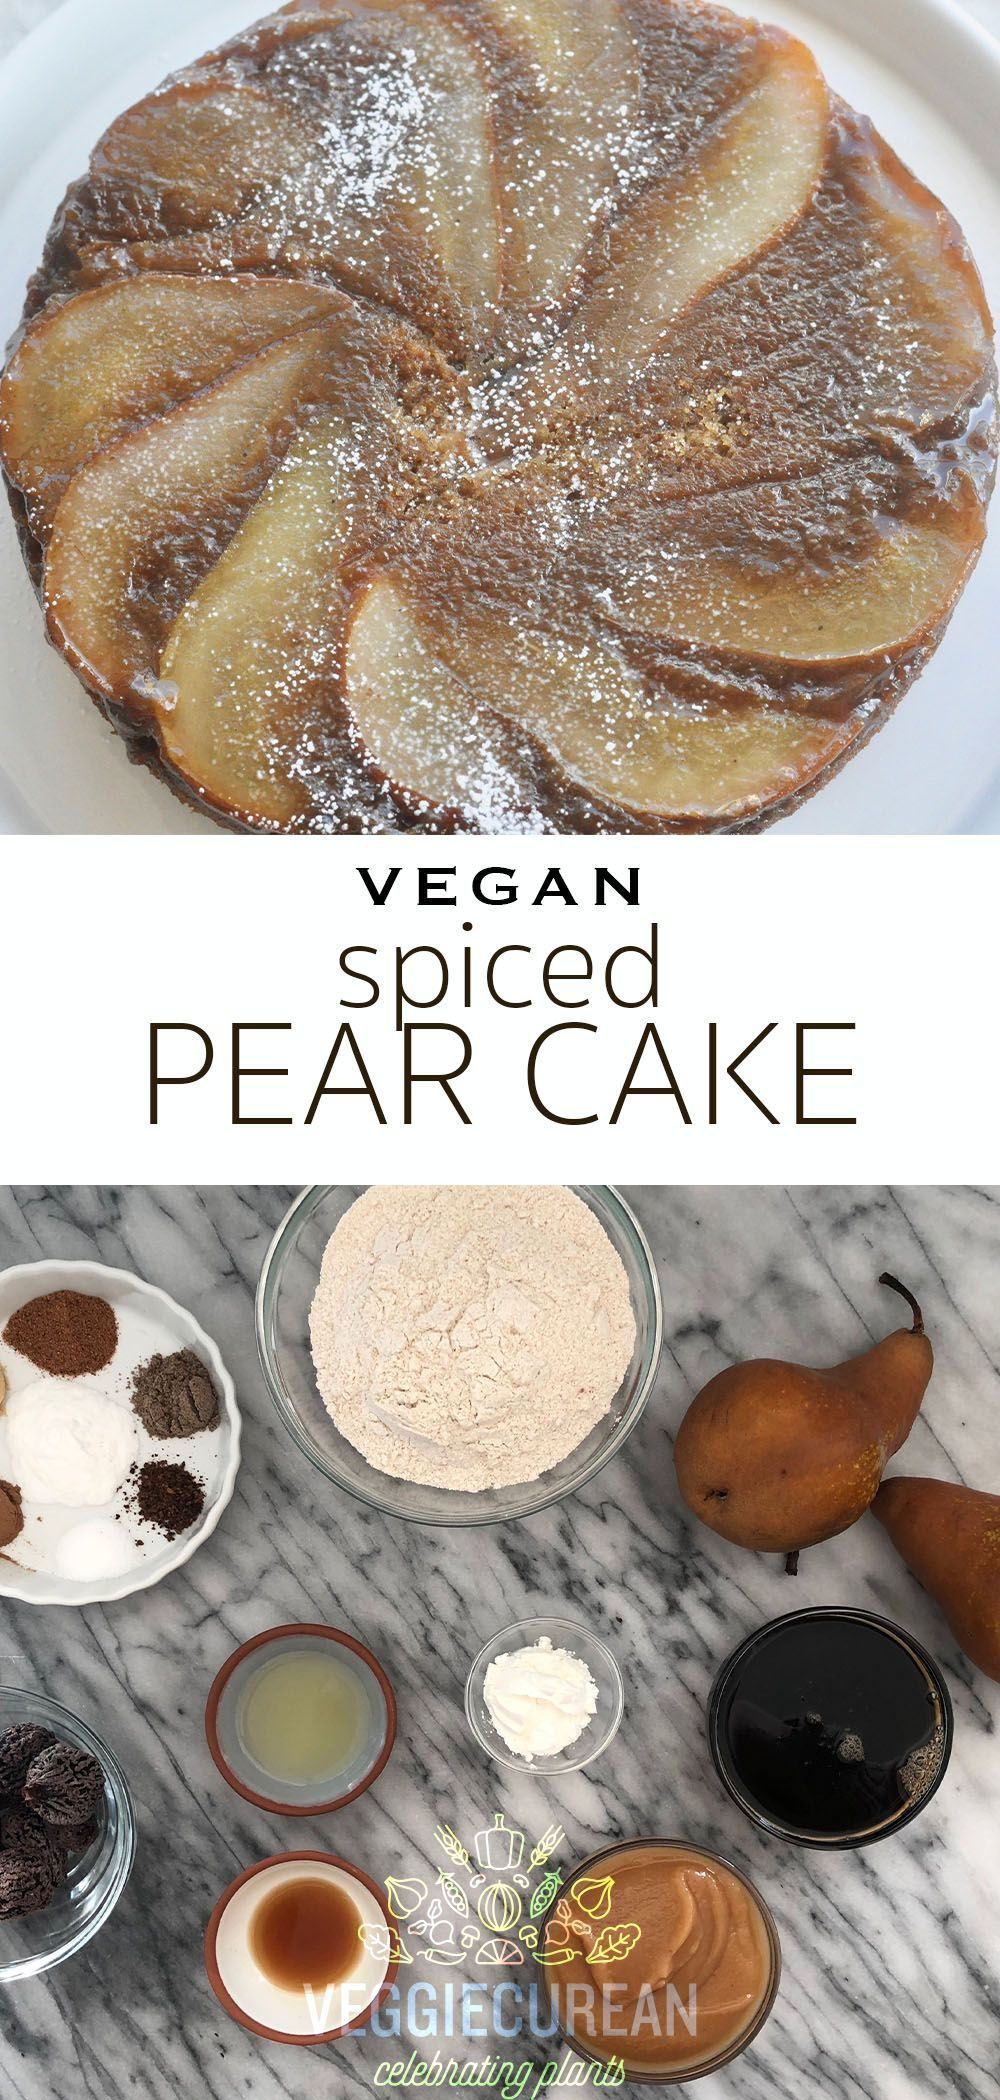 Spiced Pear Cake #hearthealthydesserts Not only is this Spiced Pear Cake vegan, fat-free and heart-healthy, it has no added sugar! It is sweetened naturally with fruits, which are packed full of nutrients. This healthy cake goes perfectly with a cup of tea on a Fall evening, or take it to your next party! #vegan #pear #cake #spiced #dessert #recipe #hearthealthydesserts